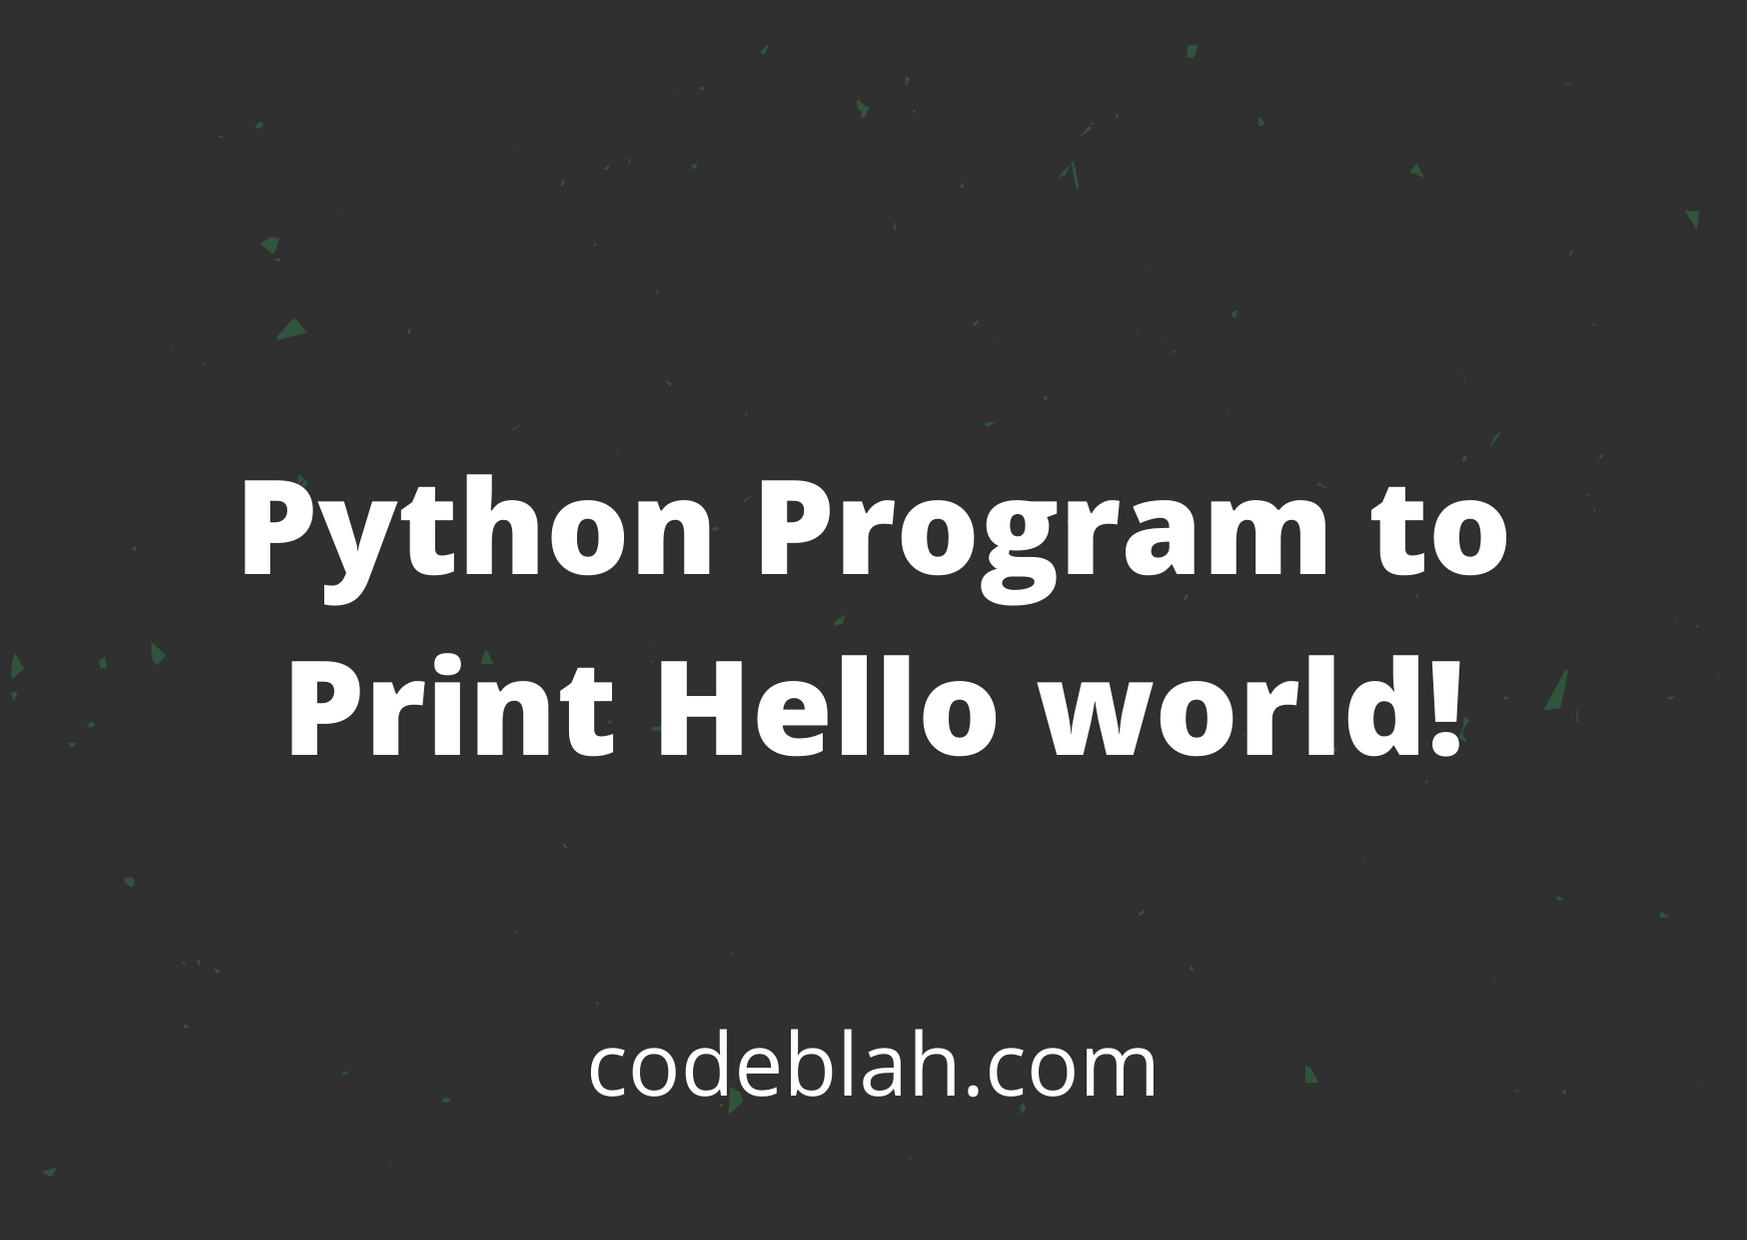 Python Program to Print Hello world!